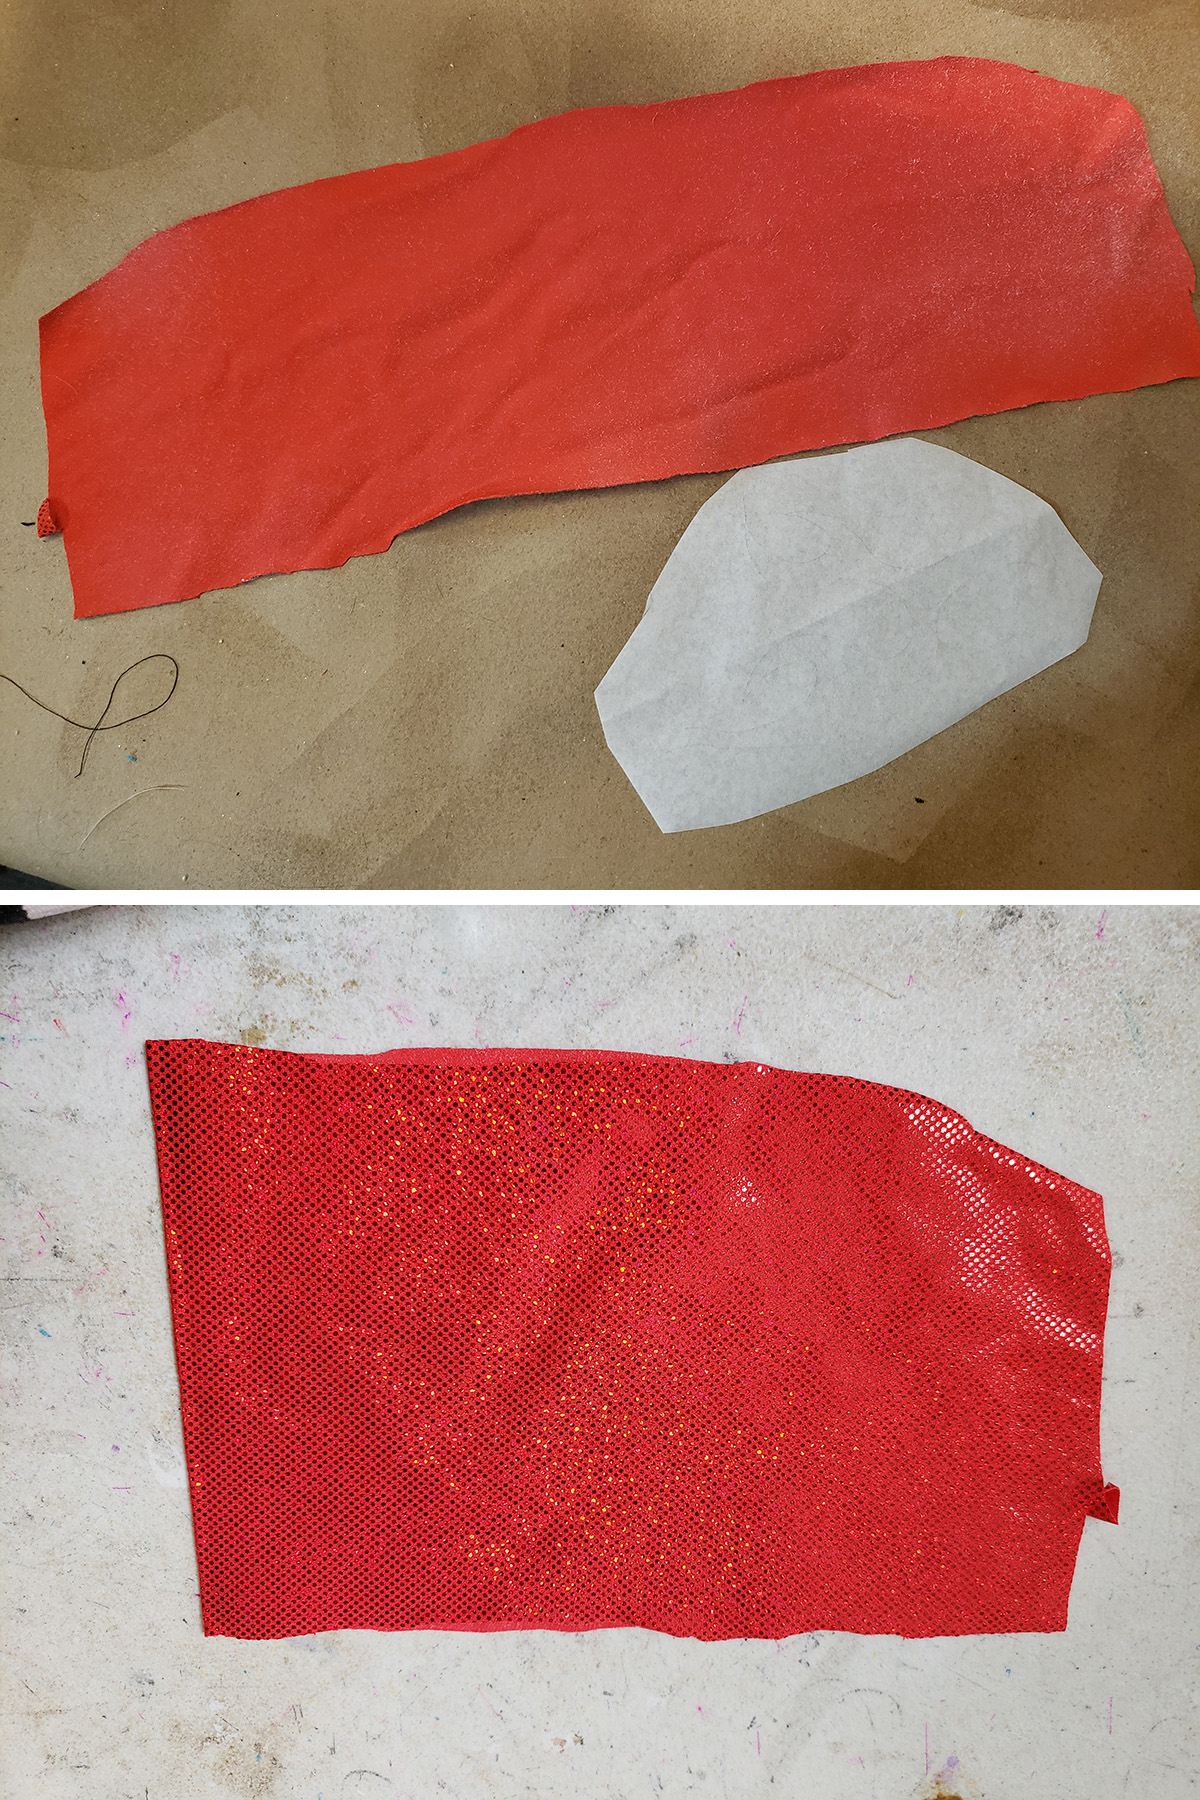 A two part compilation image showing red spandex being sprayed with glue, then folded over on itself.